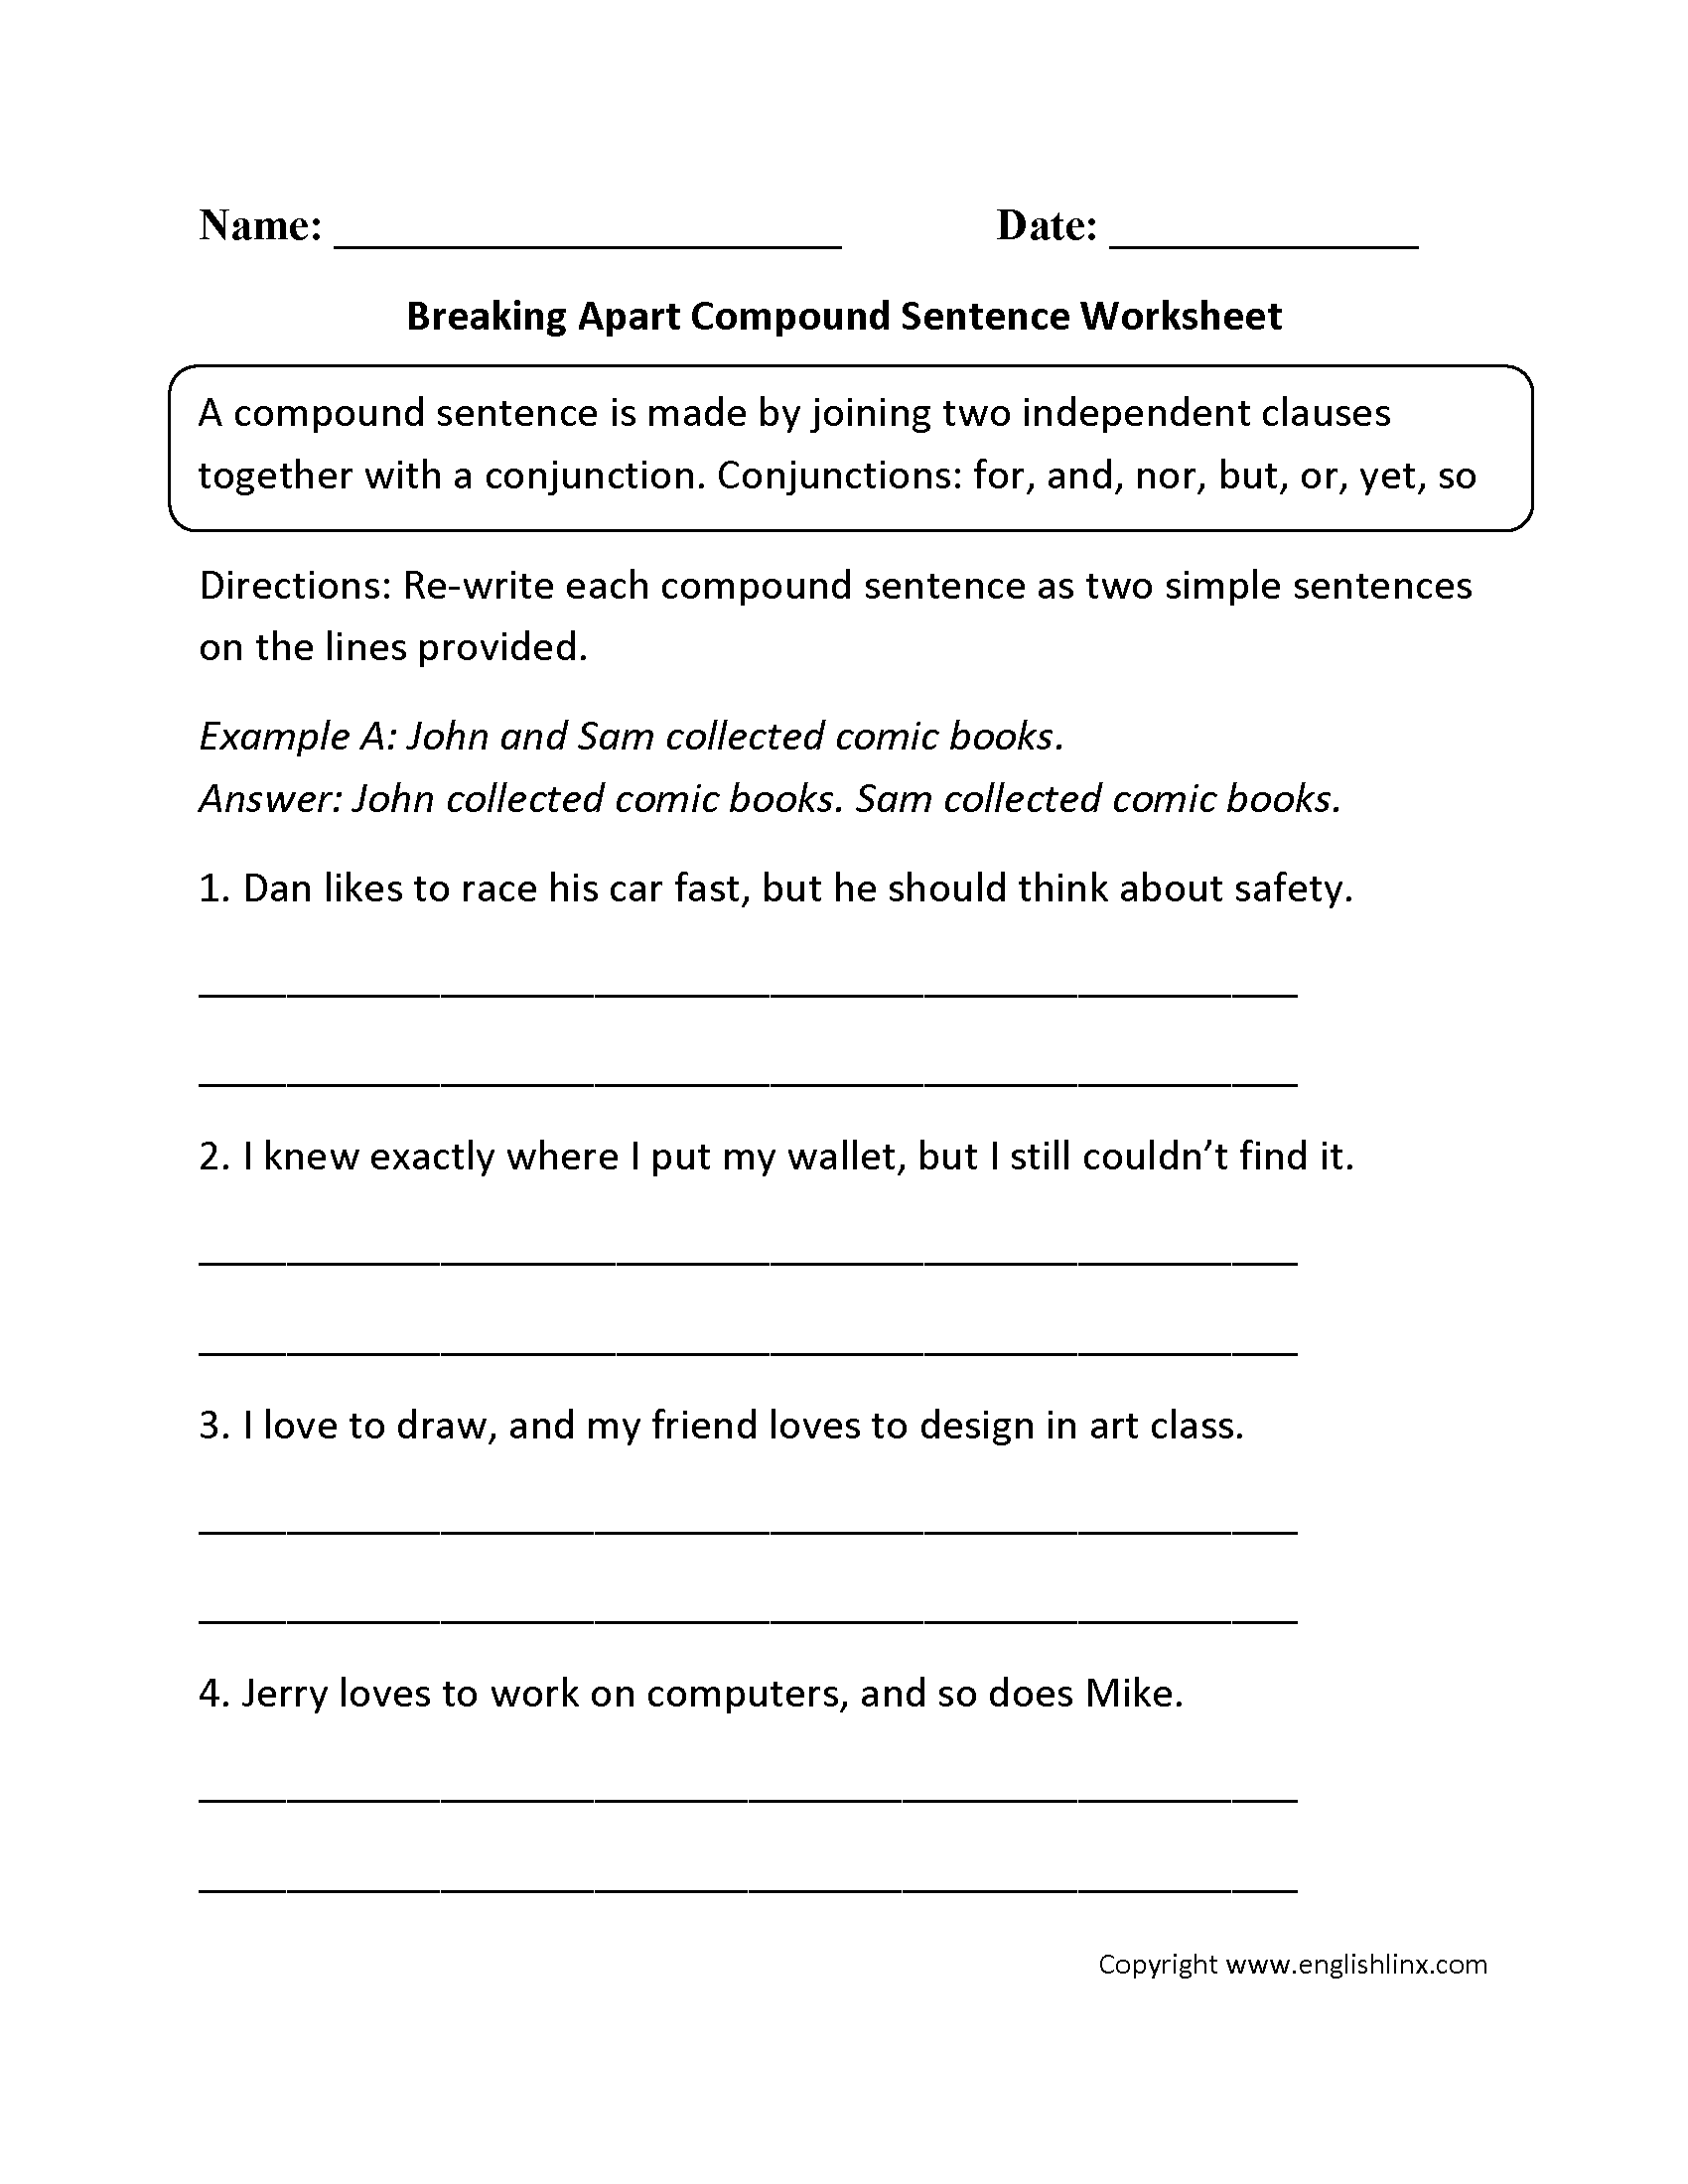 Sentence Structure Worksheets – Simple Compound and Complex Sentences Worksheet with Answers